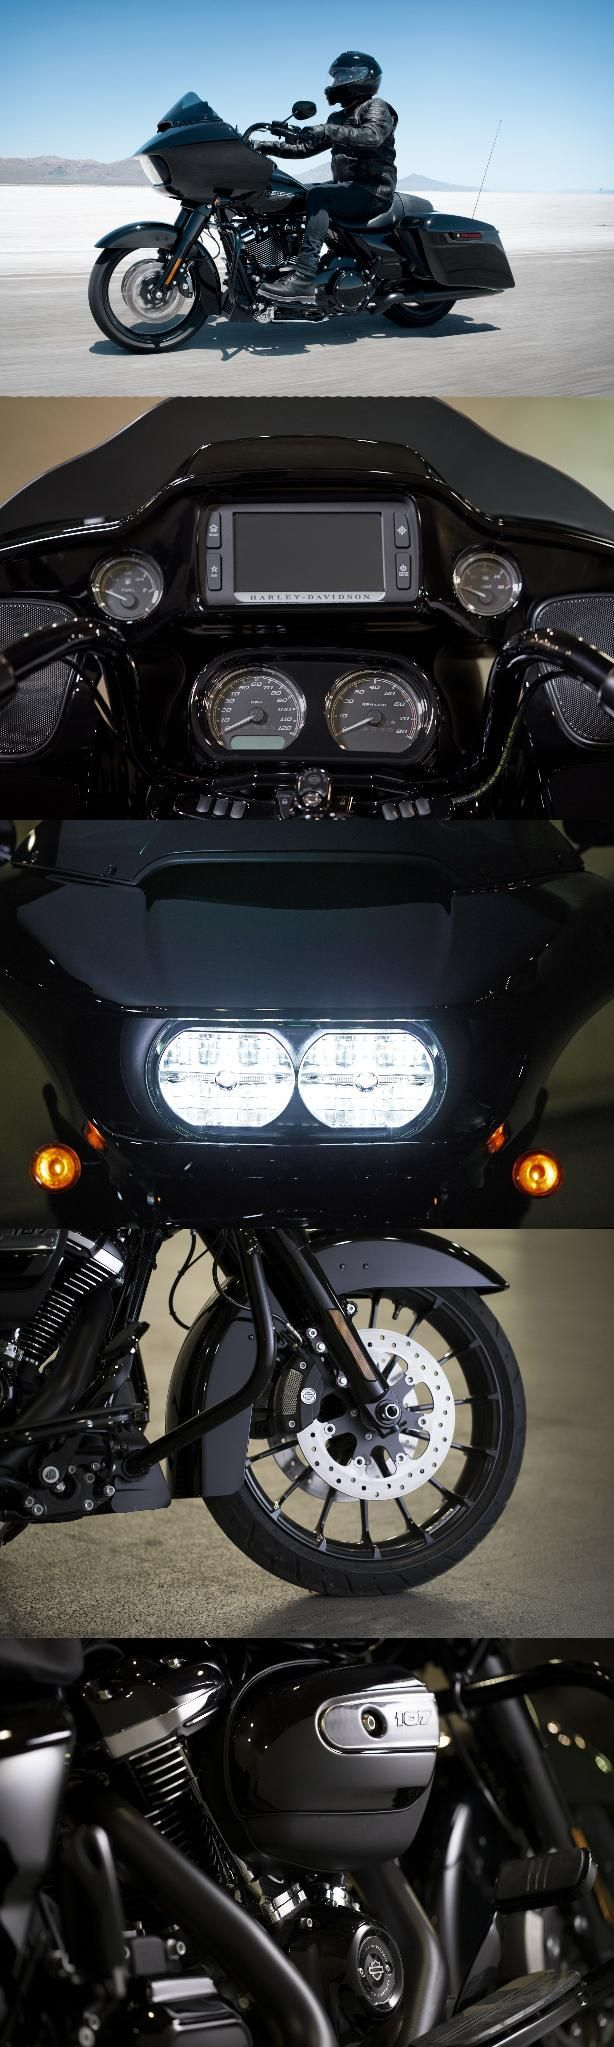 The aggressive looks & ride take our most road-devouring machine to an even darker place. | 2018 Harley-Davidson Road Glide Special